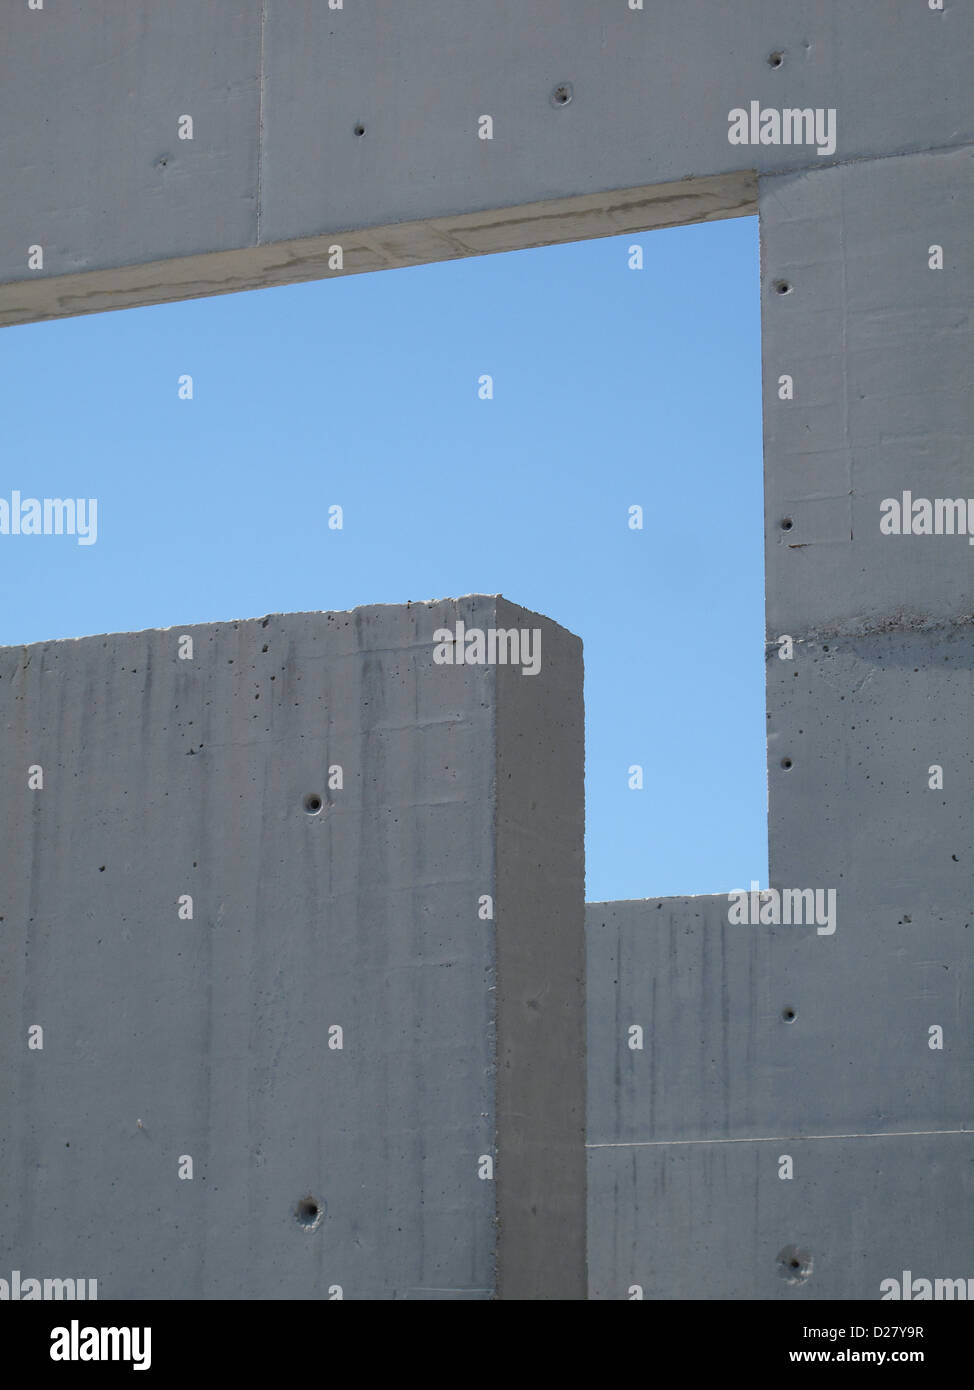 abstract shape oblong rectangle blue sky concrete stone window - Stock Image